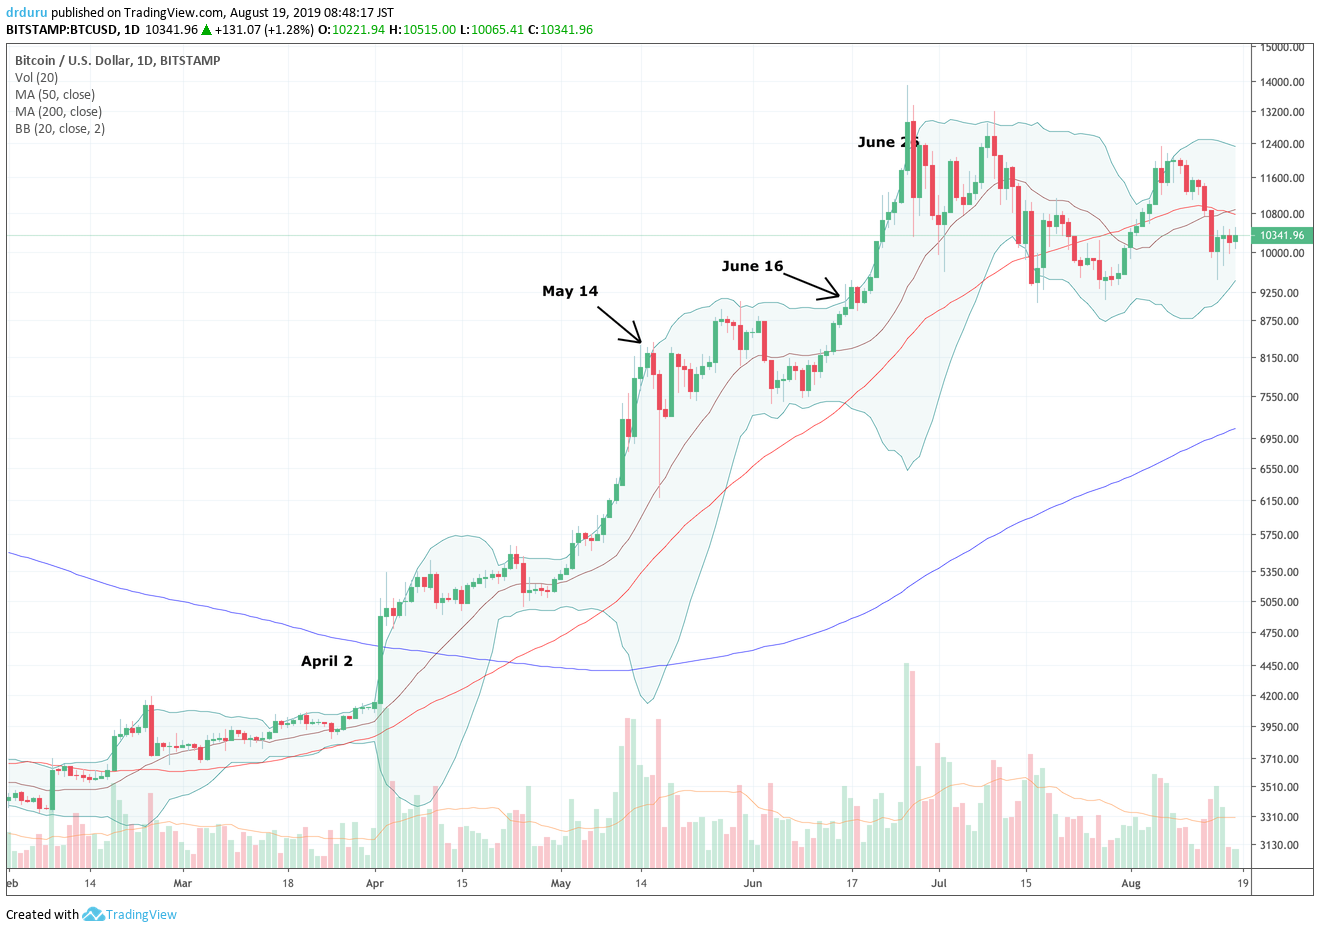 Bitcoin (BTC/USD) us biding its time for the next catalyst. For now, the cryptocurrency looks content to pivot around its 50DMA.